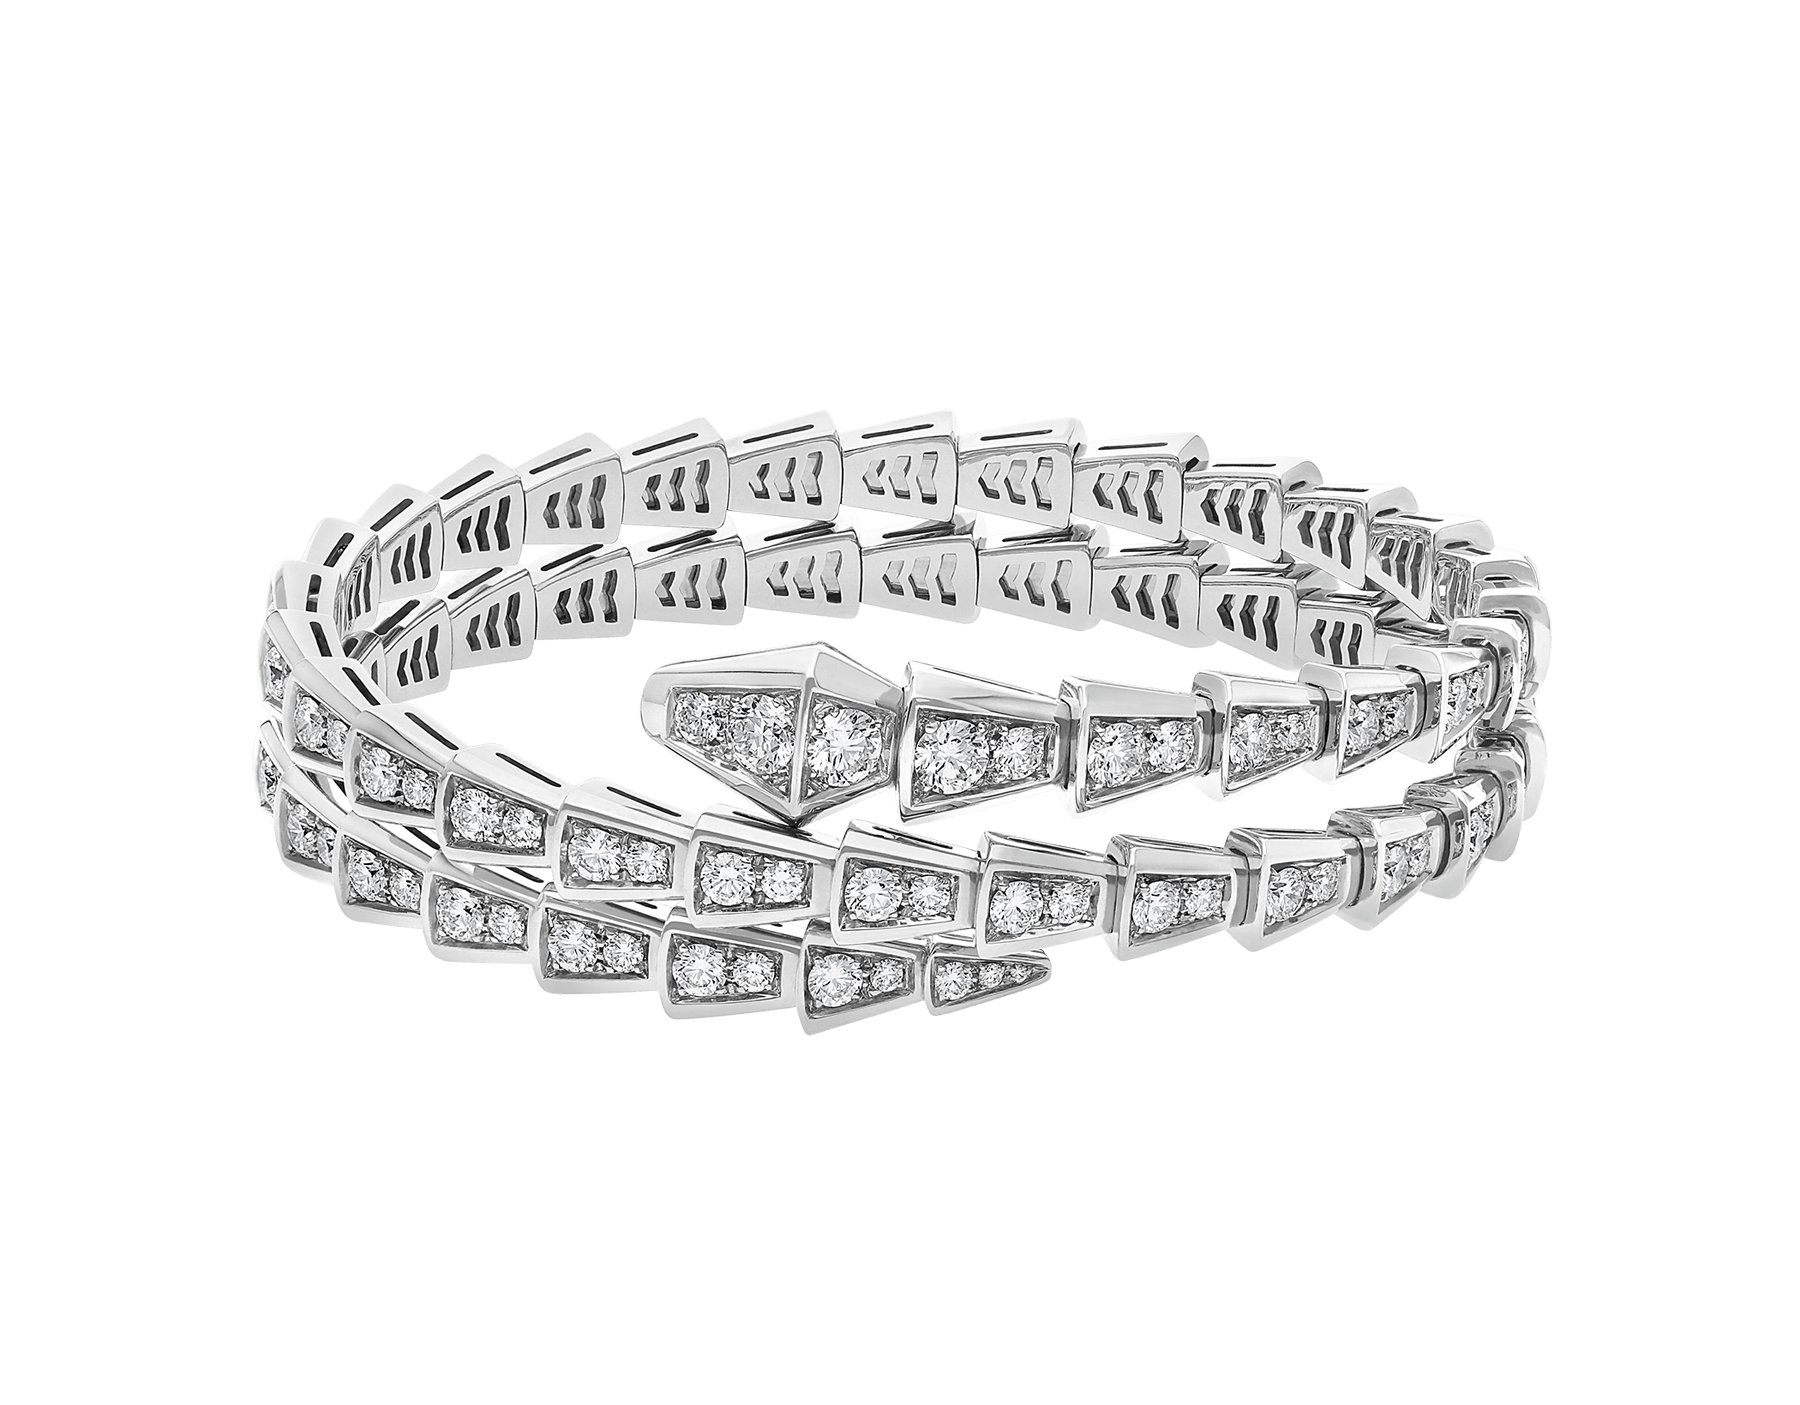 Serpenti Viper two-coil 18 kt white gold bracelet set with pavé diamonds BR858795 image 2